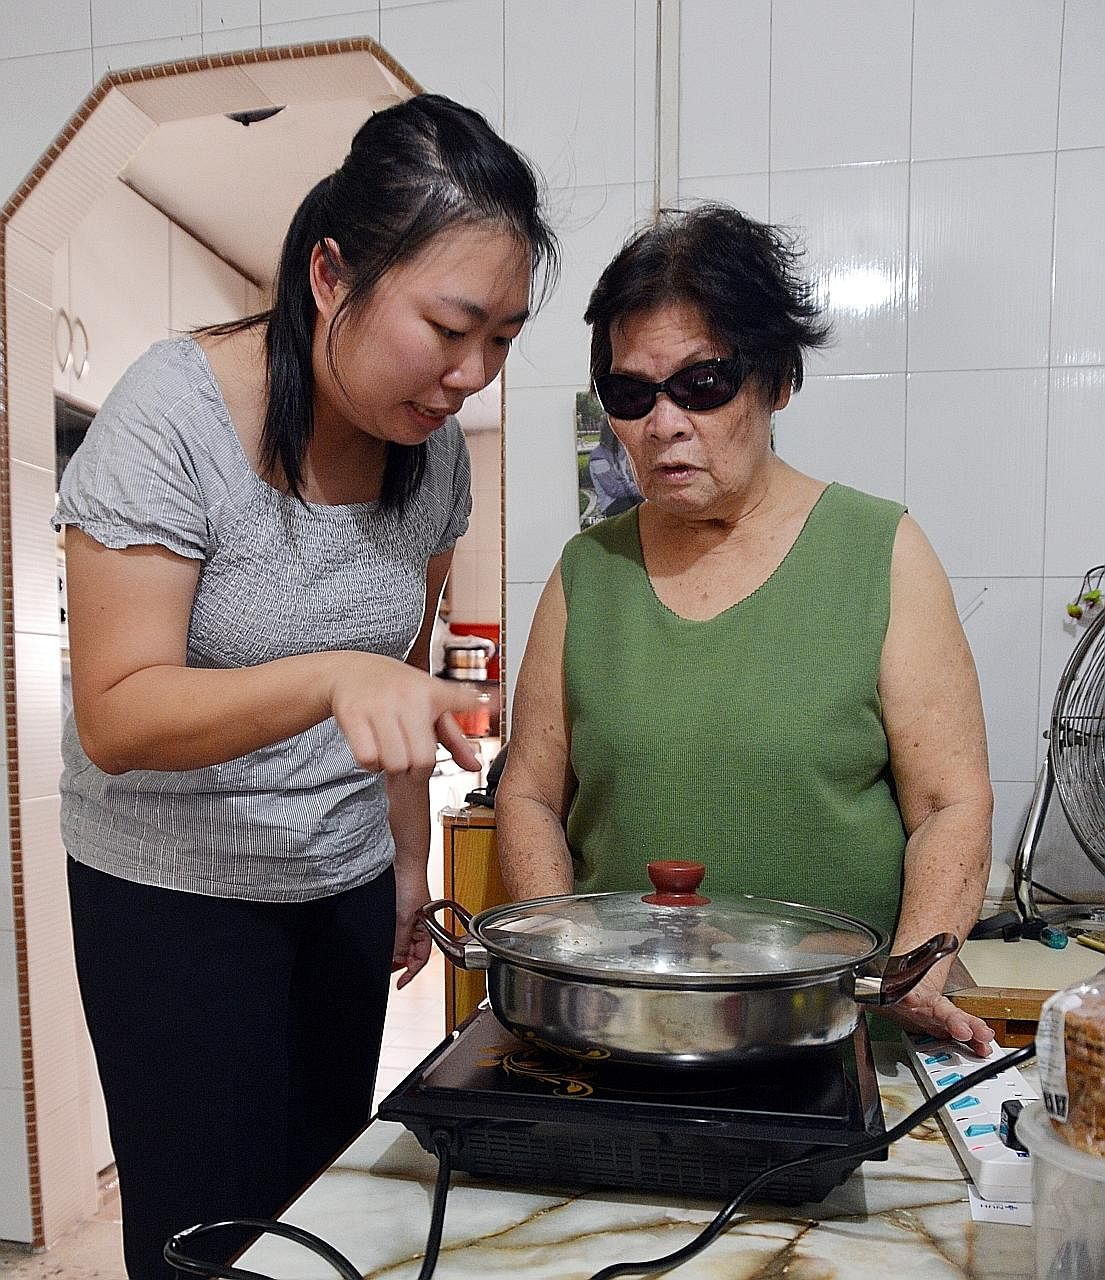 Senior occupational therapist Chen Xuanyu shows housewife Joy Leong how to cook food and boil water more safely. Madam Leong has total vision loss in one eye and partial vision in the other.